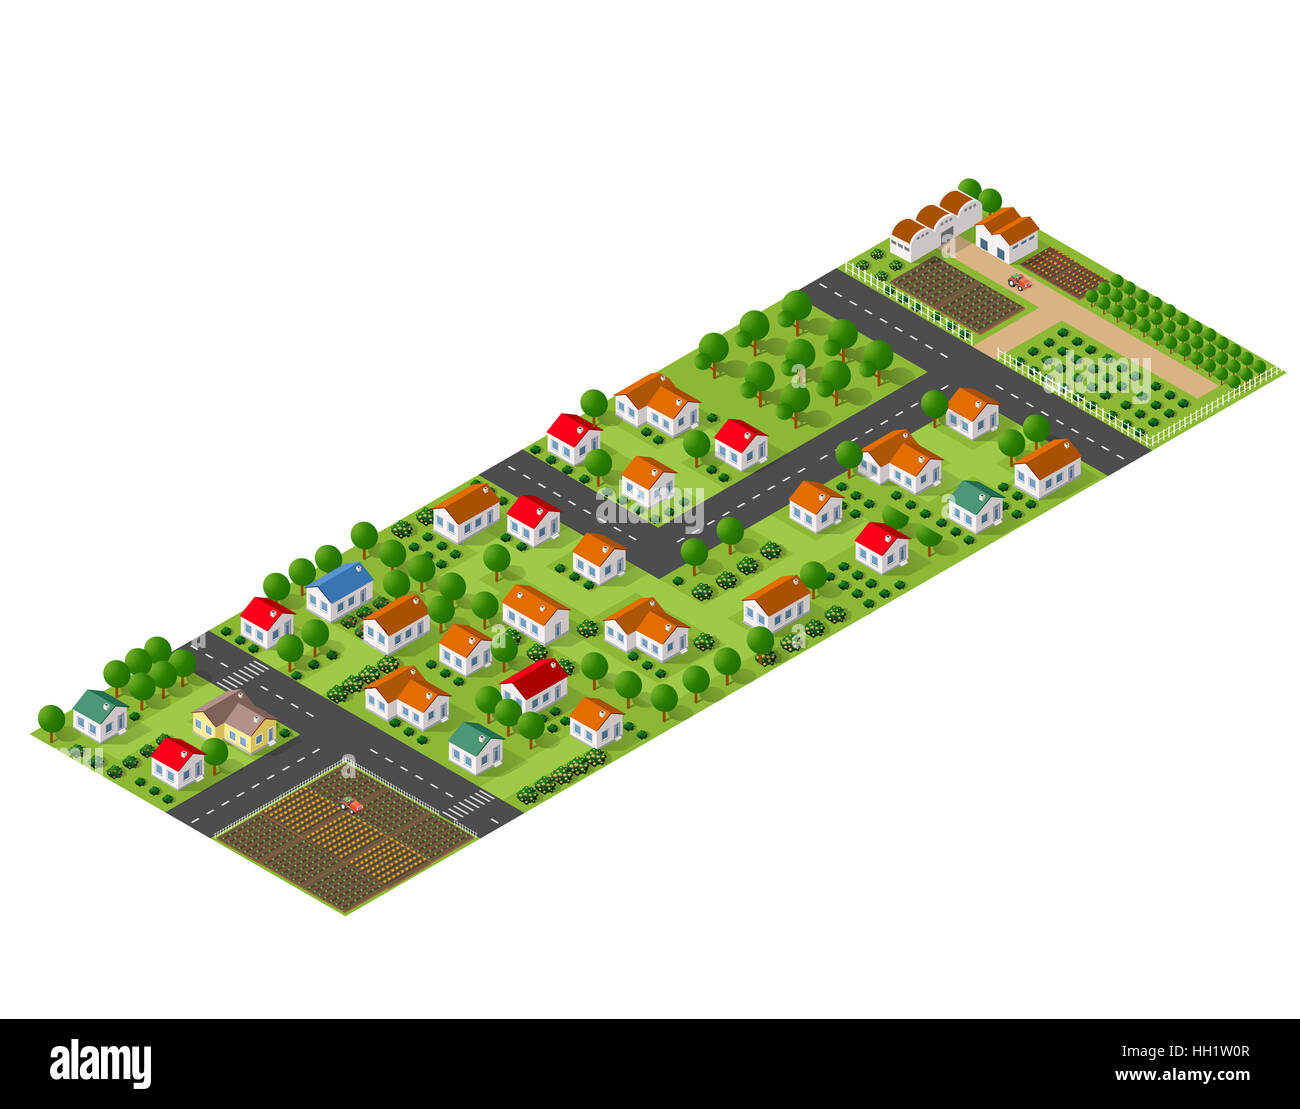 Isometric perspective view of a rural area with village houses, gardens, trees and farms - Stock Image